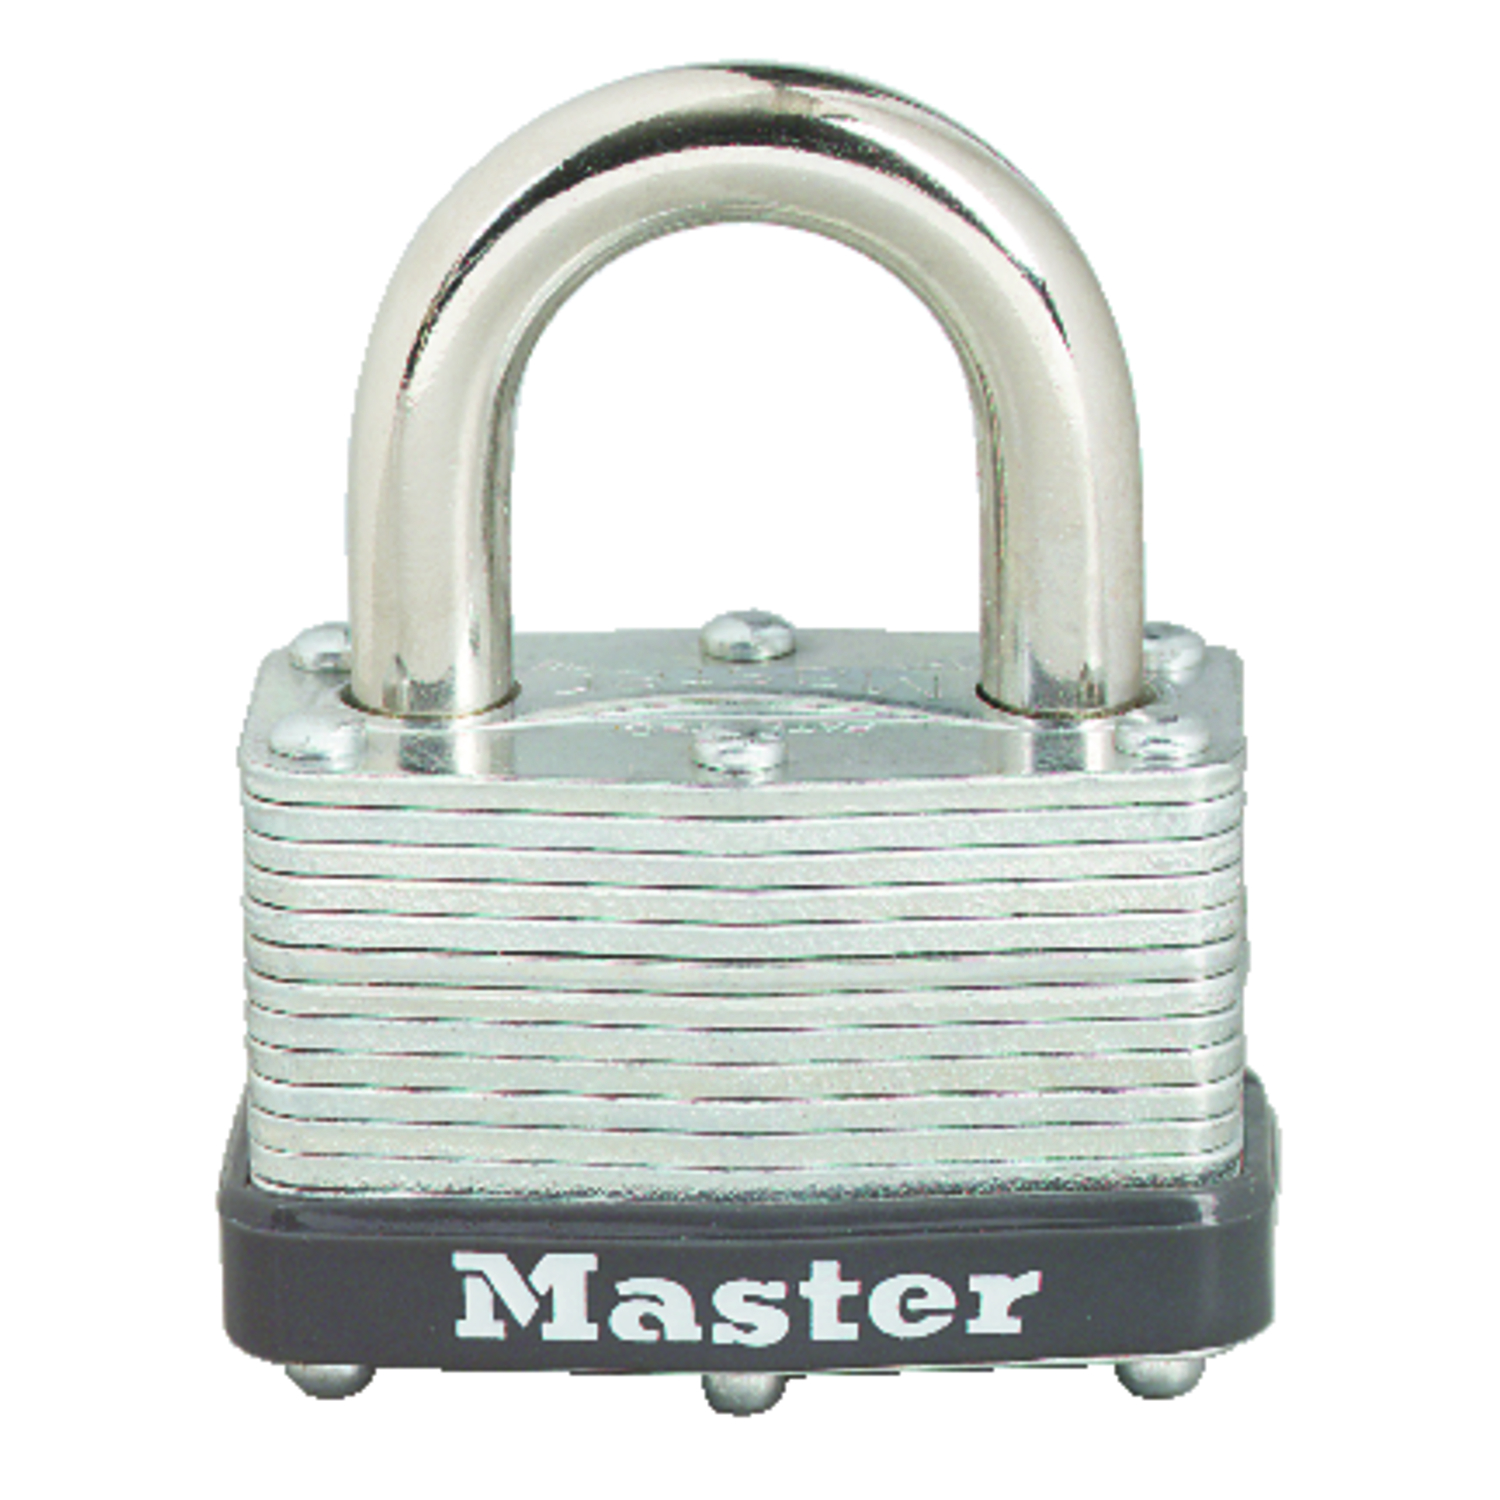 Master Lock  1-1/16 in. H x 1 in. W Warded Locking  Laminated Steel  Padlock  1 each